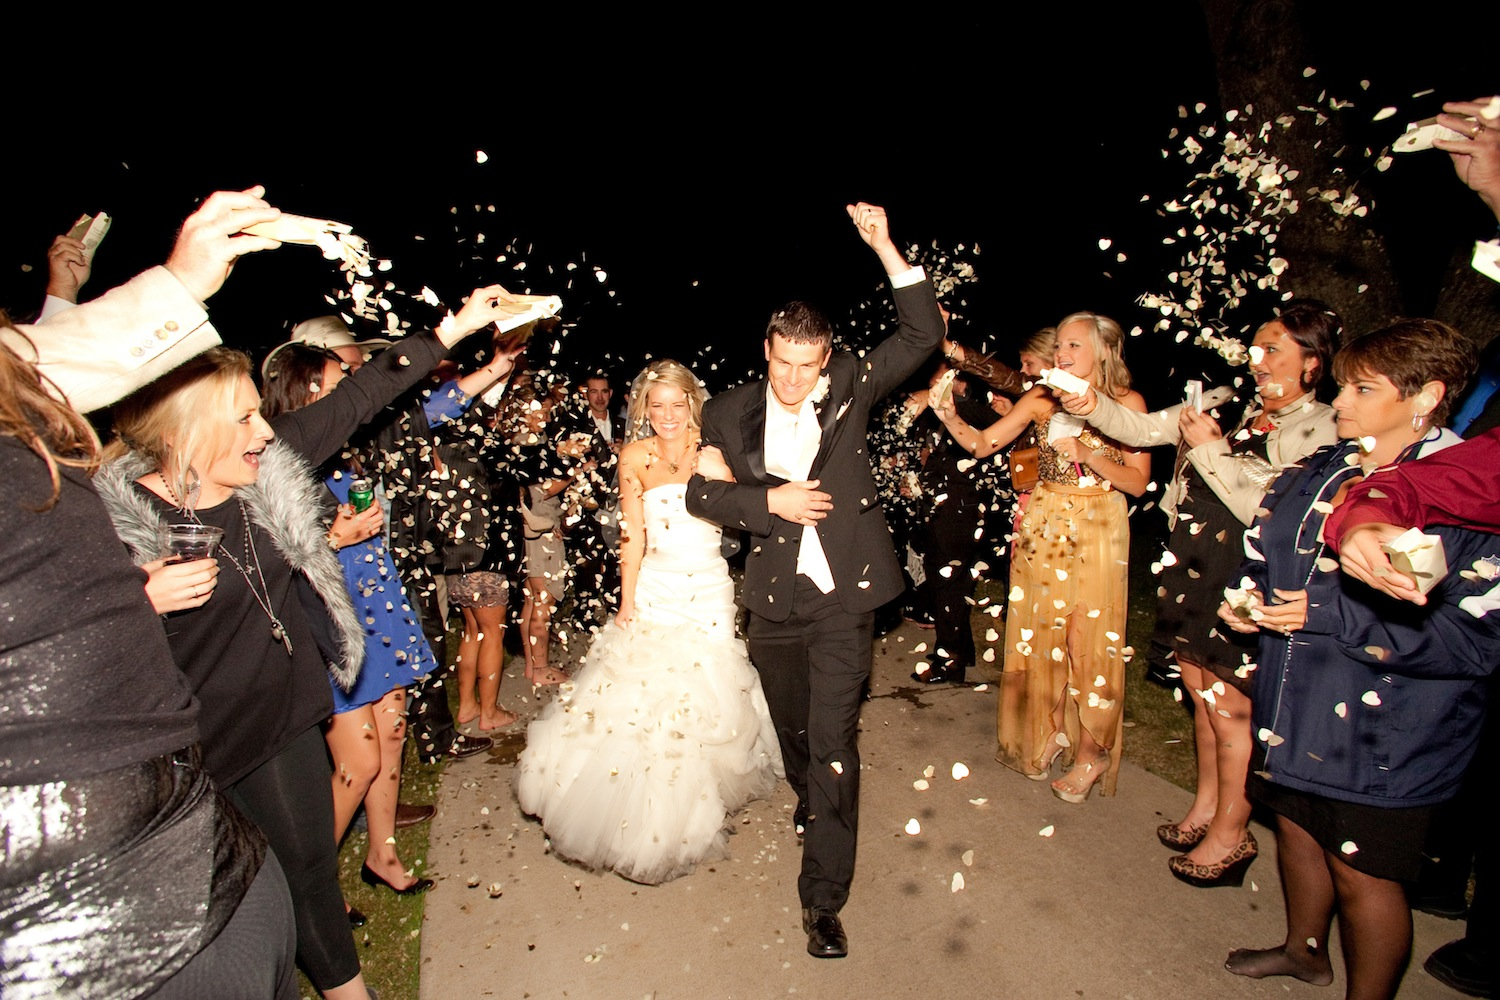 wedding grand exit with gold heart shaped confetti